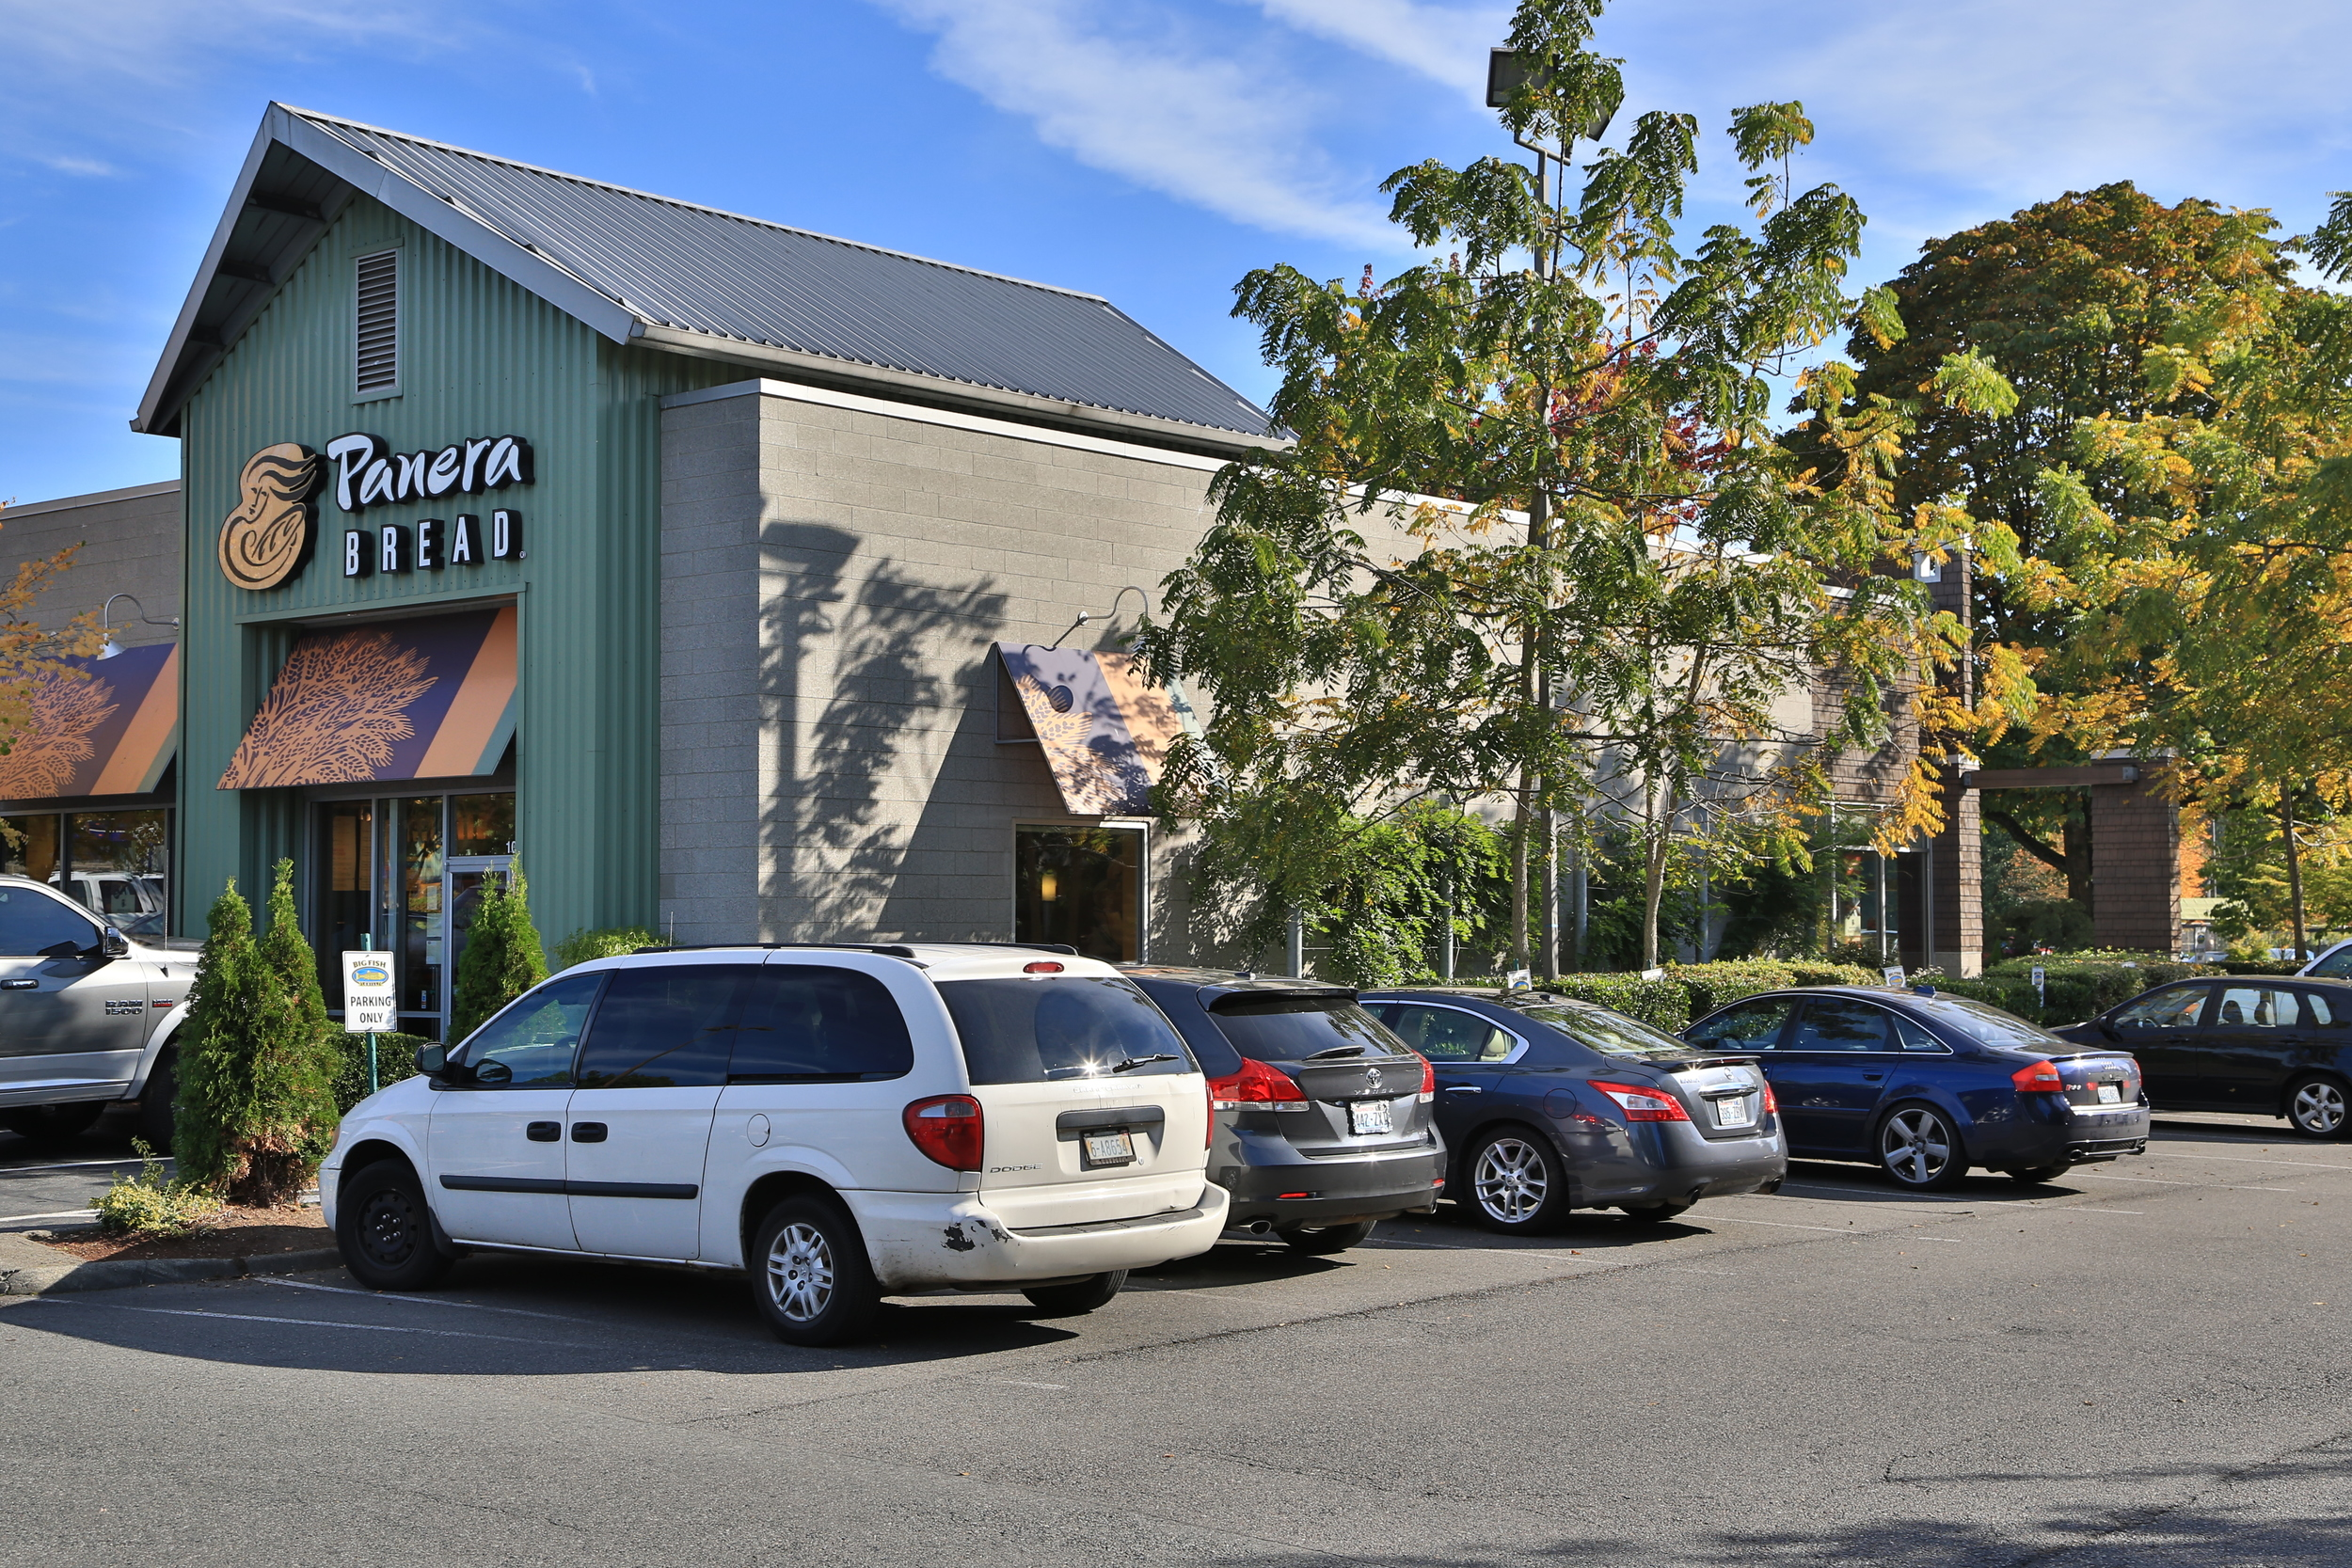 DTW - Downtown Woodinville - Panera.JPG